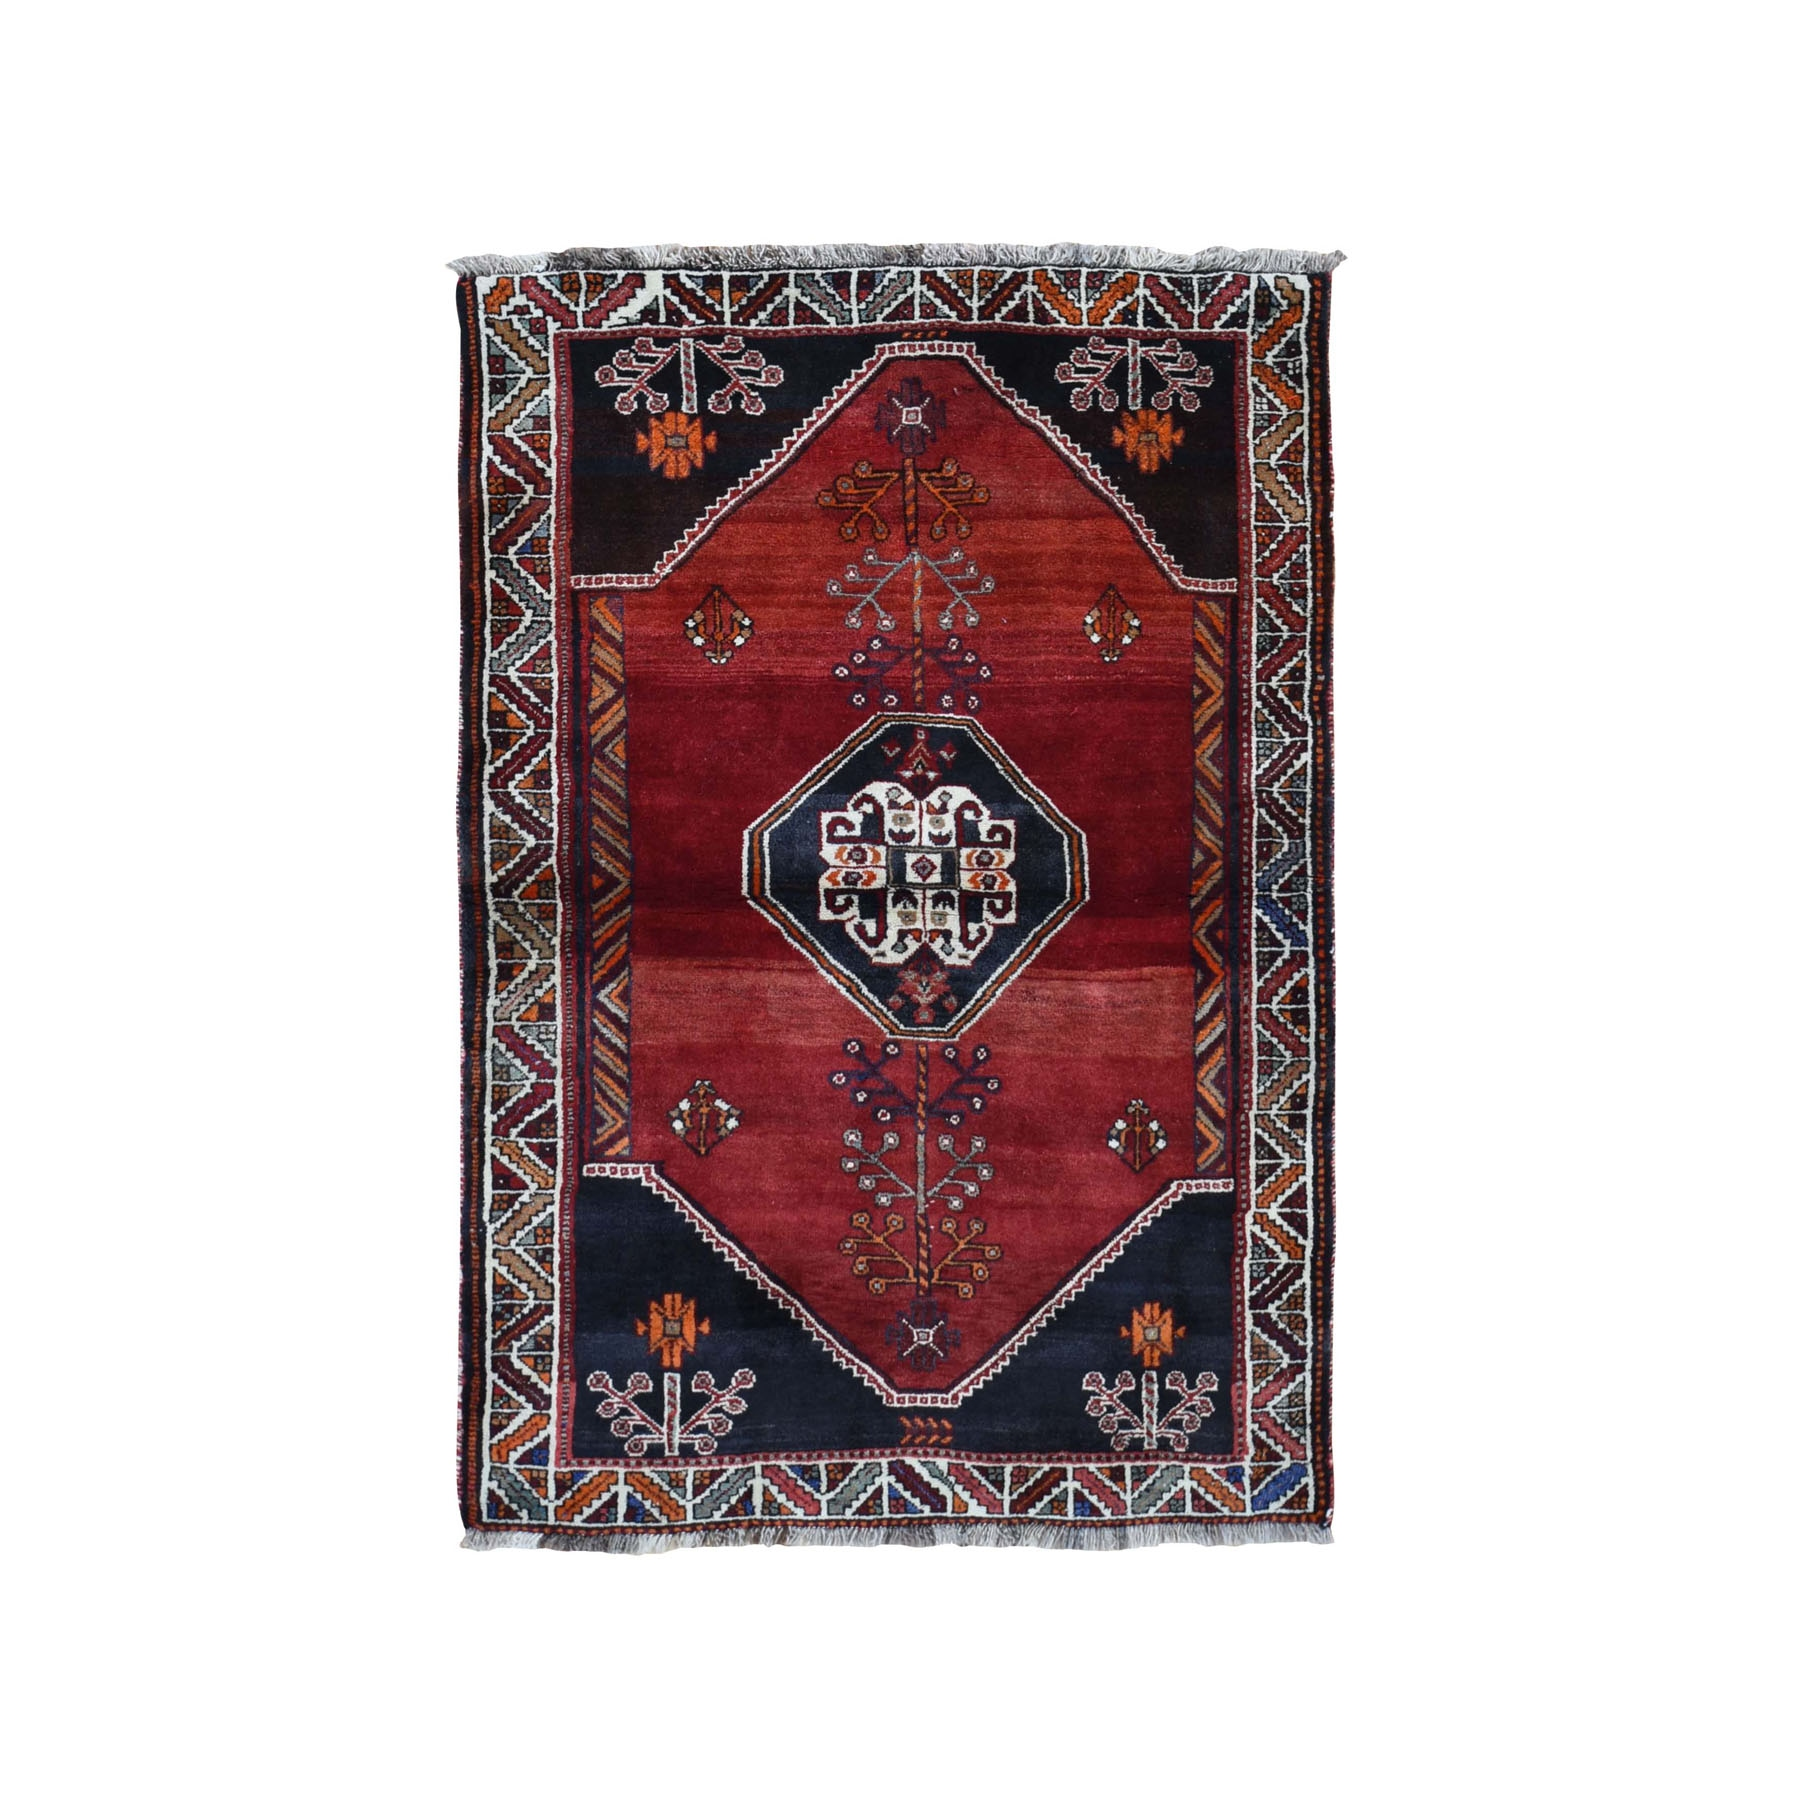 "4'x5'9"" Red New Persian Shiraz Abrush Pure Wool Hand Knotted Oriental Rug"